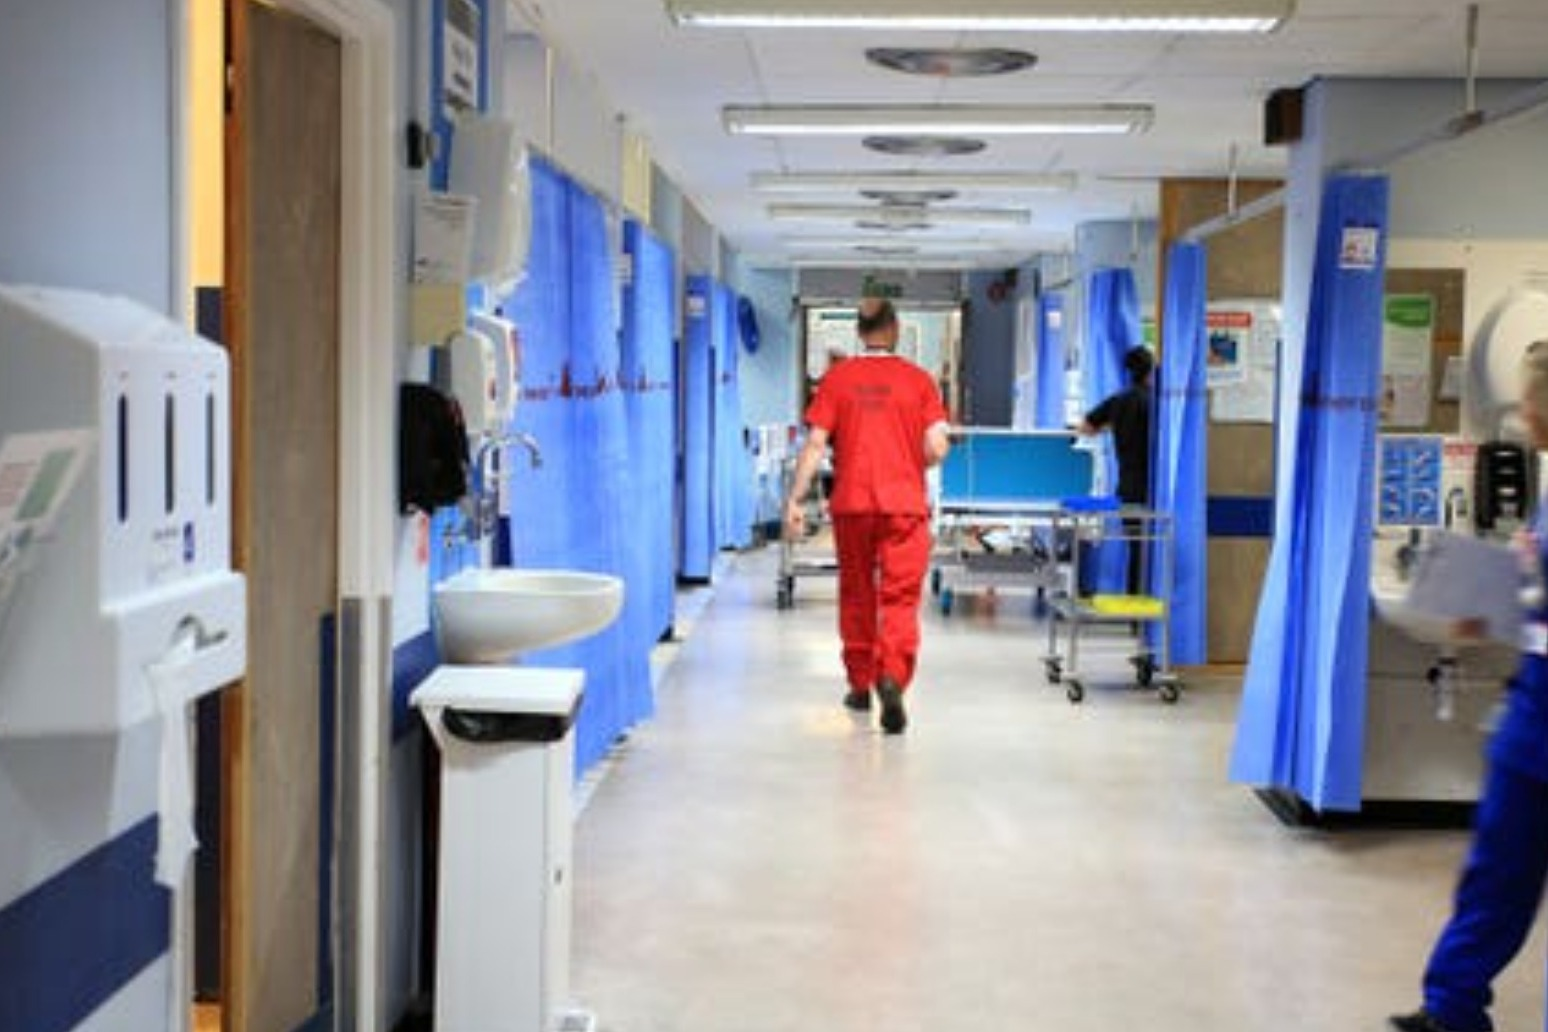 Government under pressure to increase NHS pay after Scotland offer